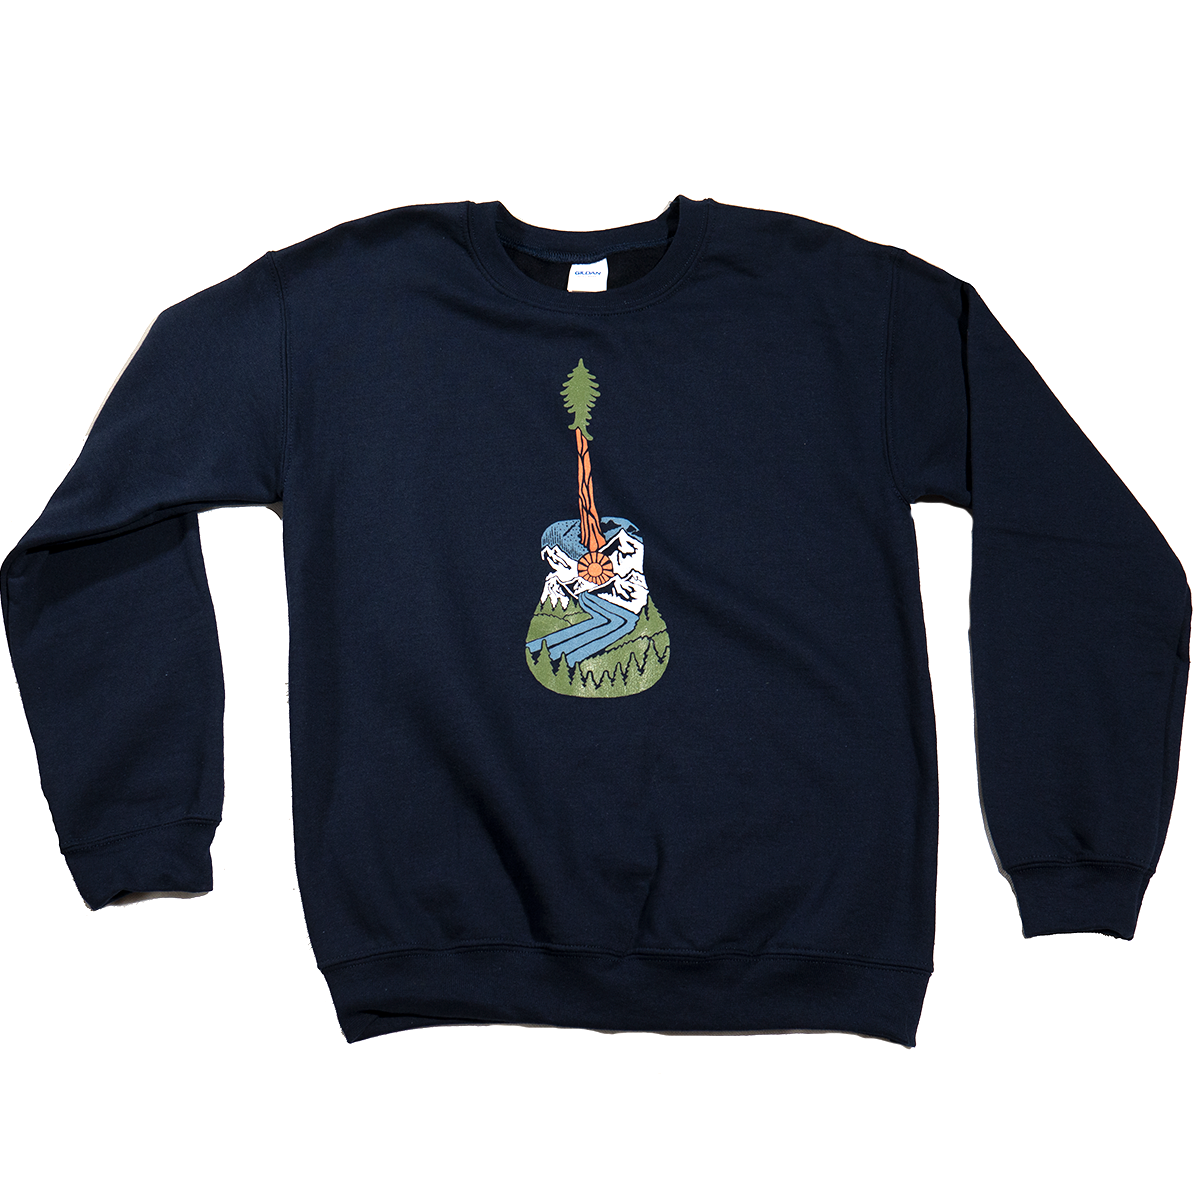 Forest Guitar - Atomic Child Dark Navy Crew Neck Sweatshirt - B Fresh